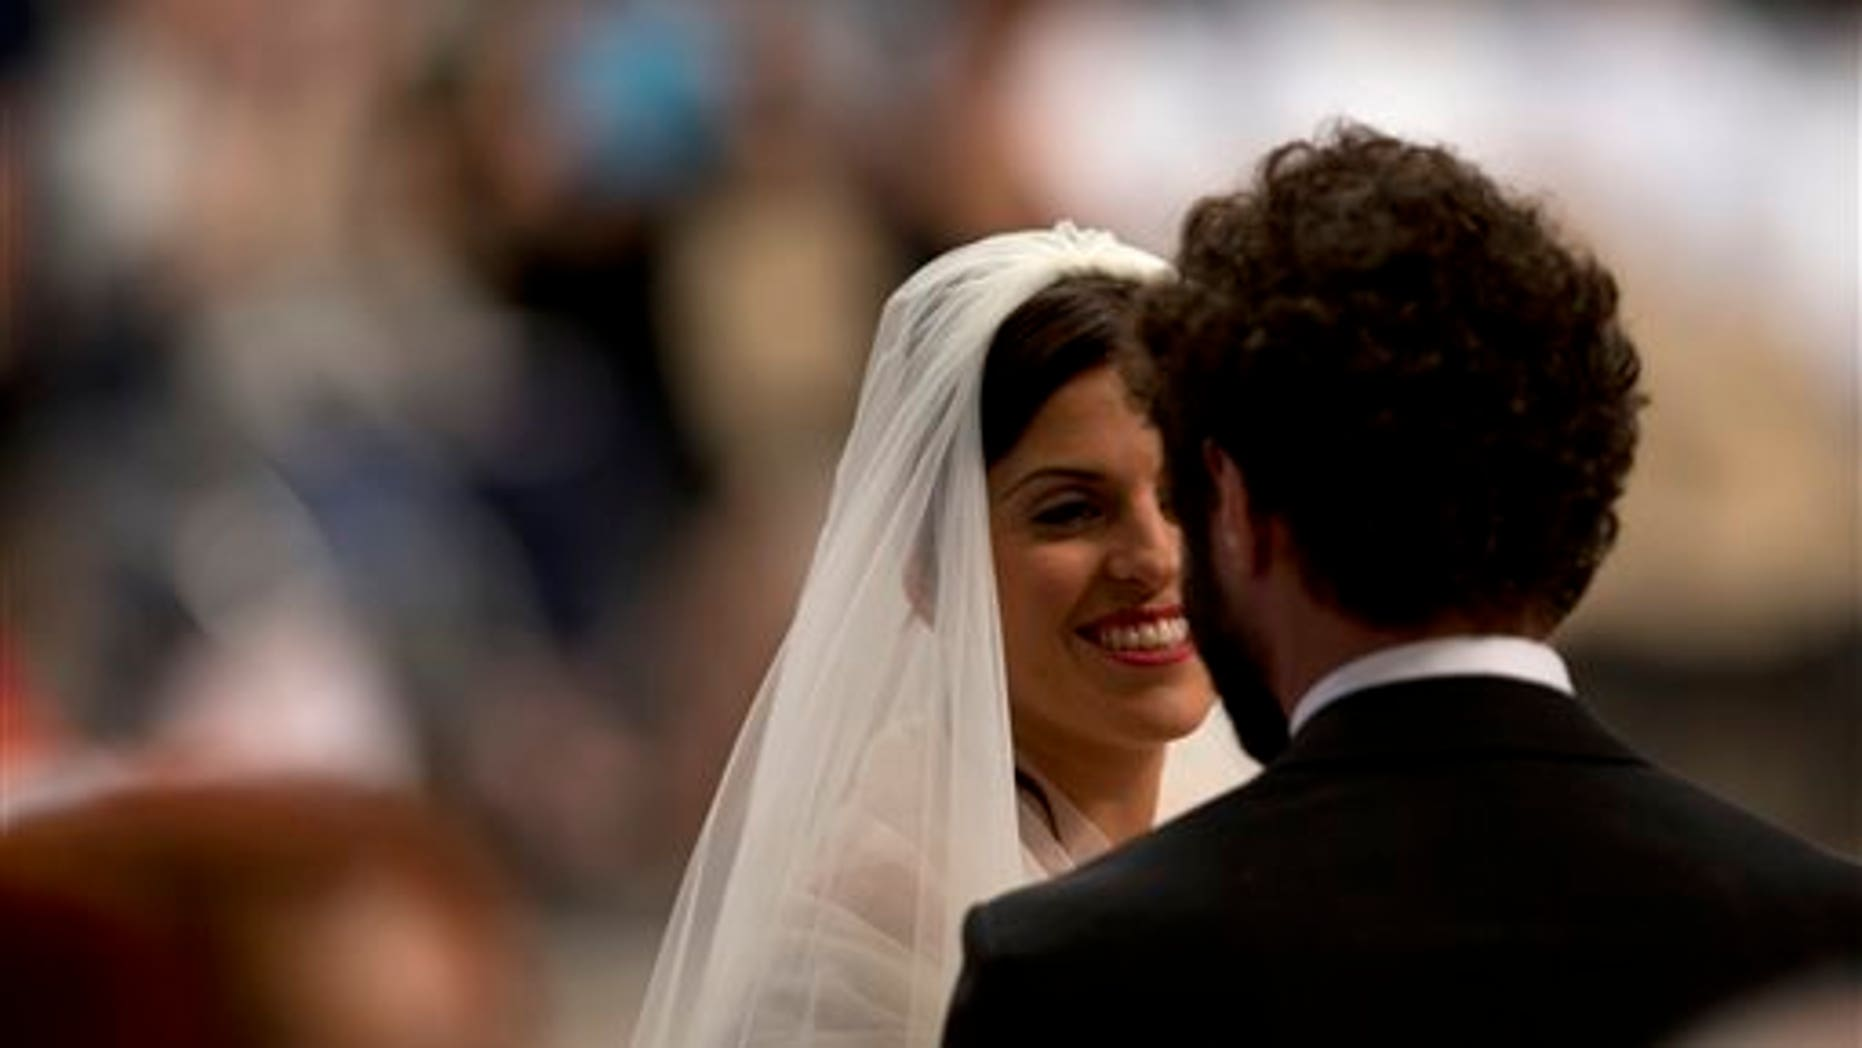 Alessandra Pucci smiles to Francesco Allotta  after being married by Pope Francis, during a wedding ceremony in St. Peter's Basilica at the Vatican, Sunday, Sept. 14, 2014.  Pope Francis married 20 couples Sunday, including some who already live together and those with children, technically a sin in the eyes of the church. (AP Photo/Alessandra Tarantino)